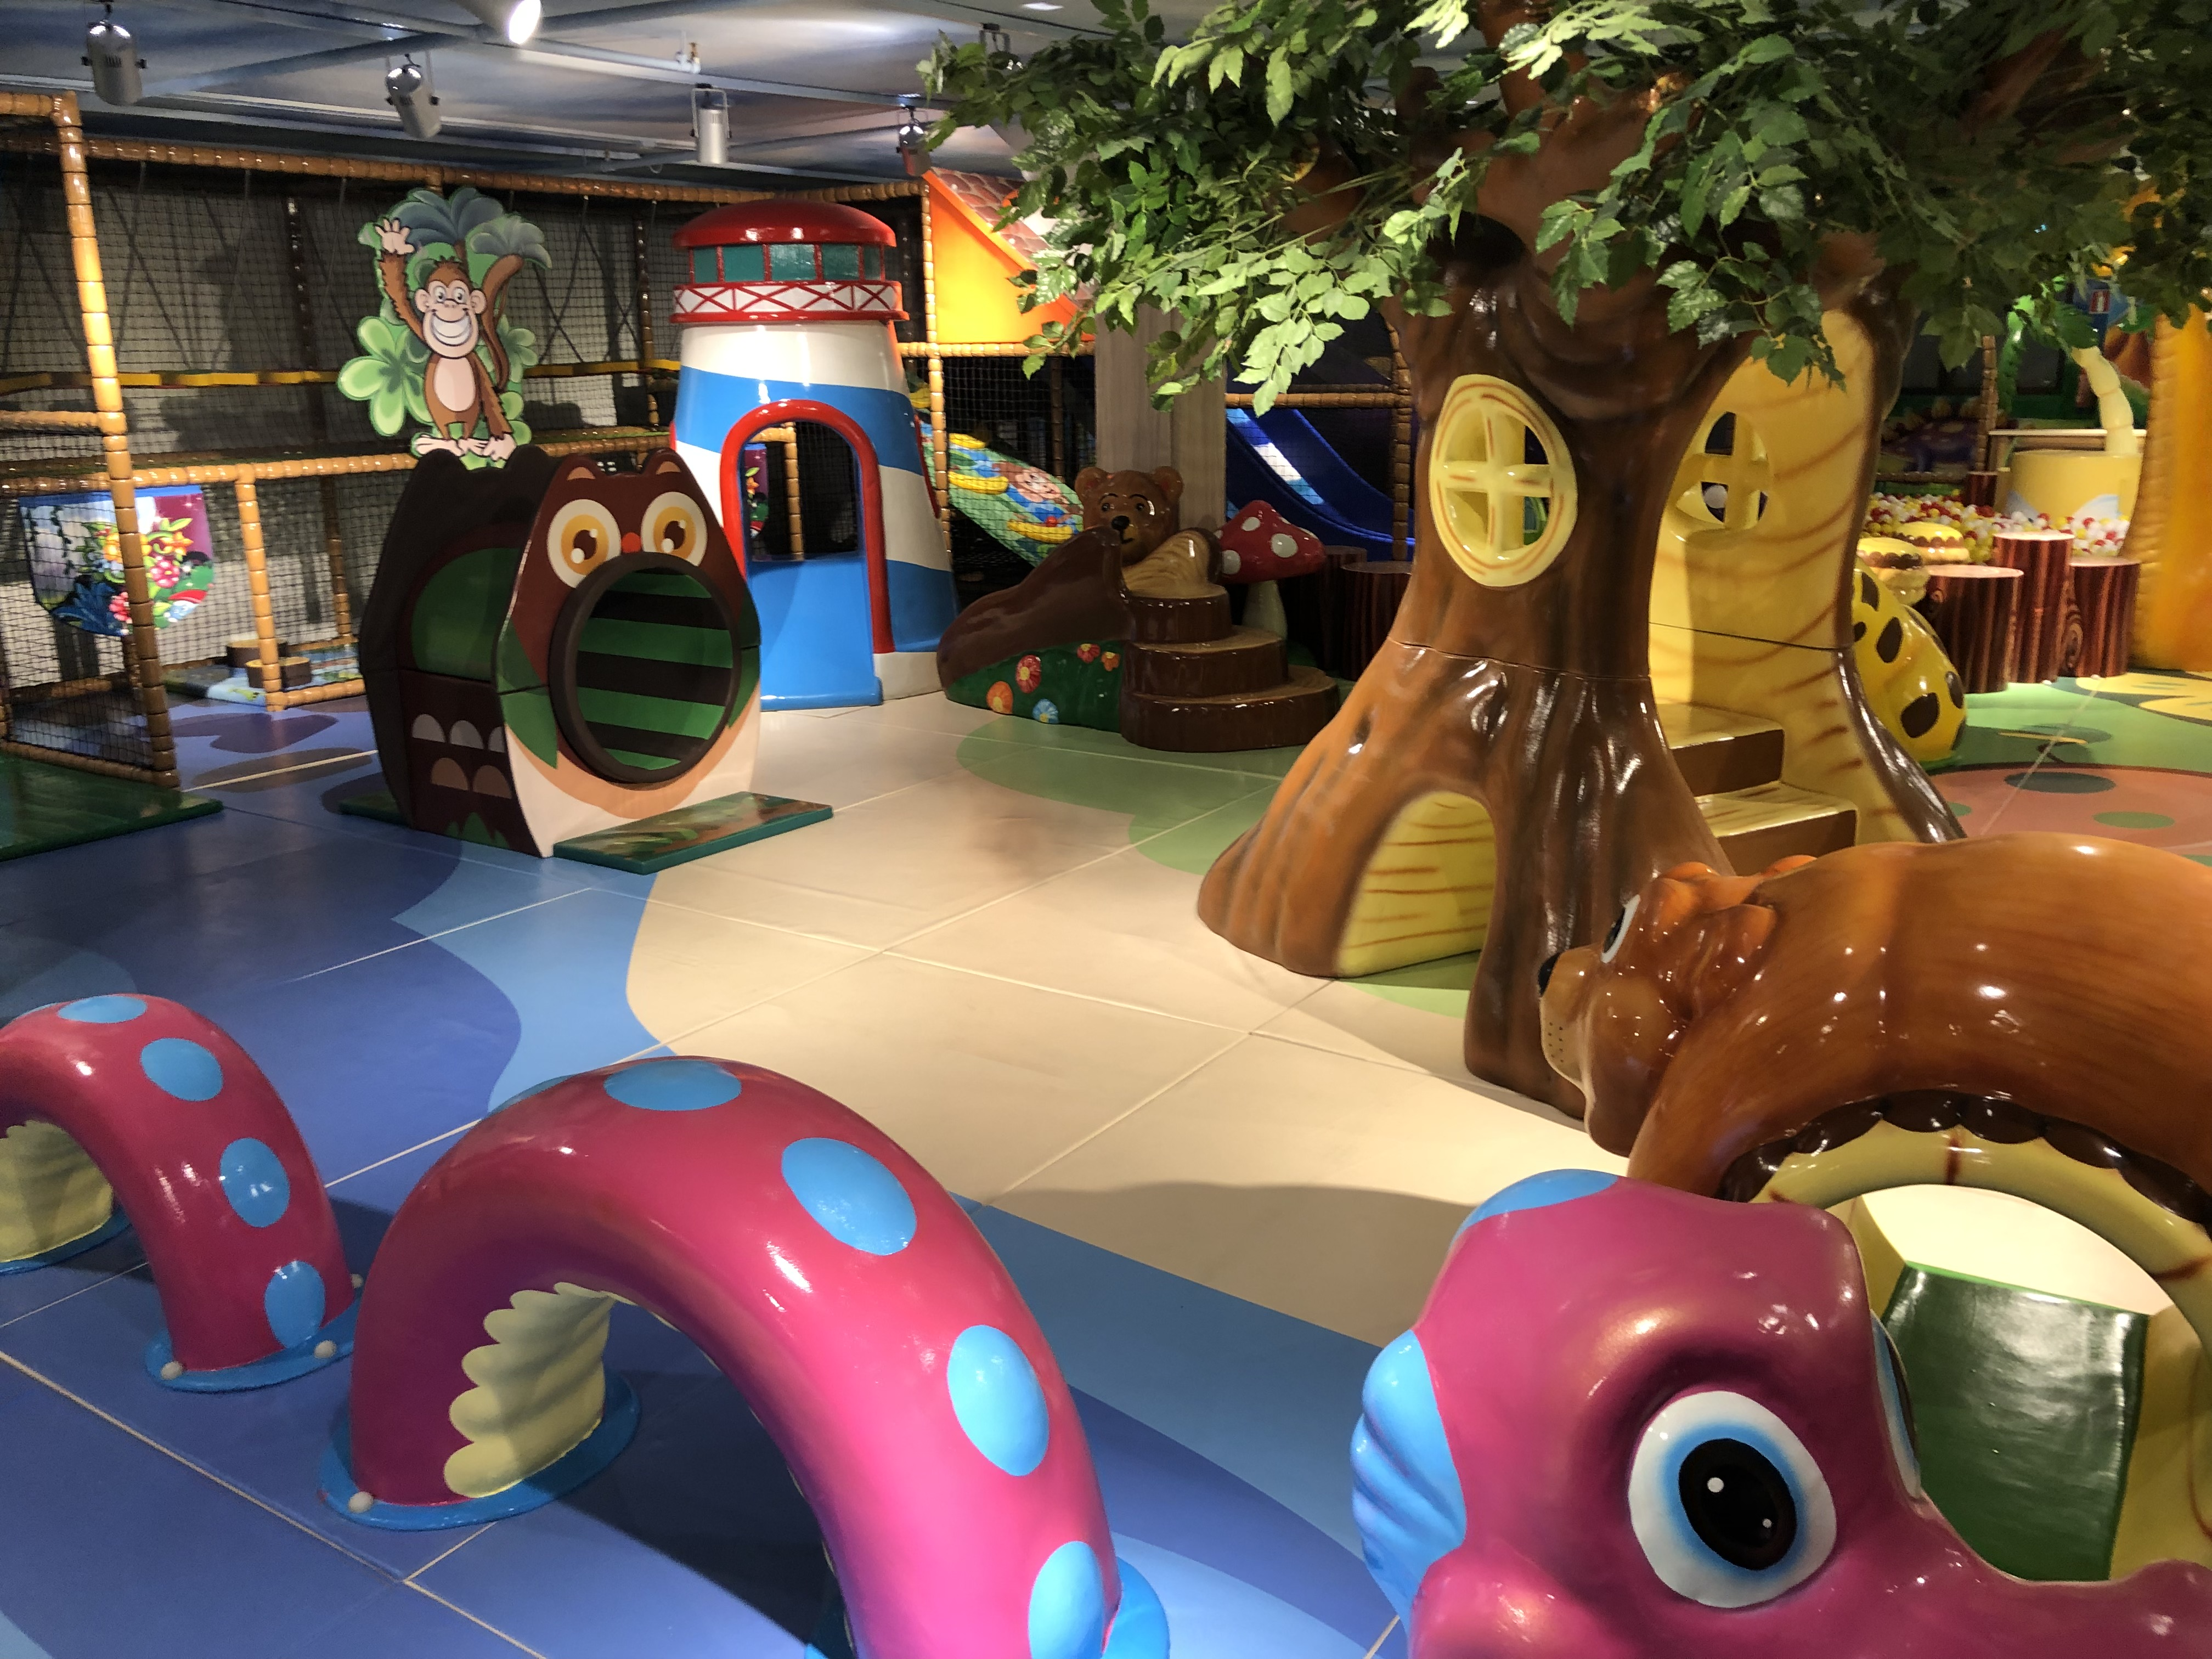 Designs for Themed playgrounds